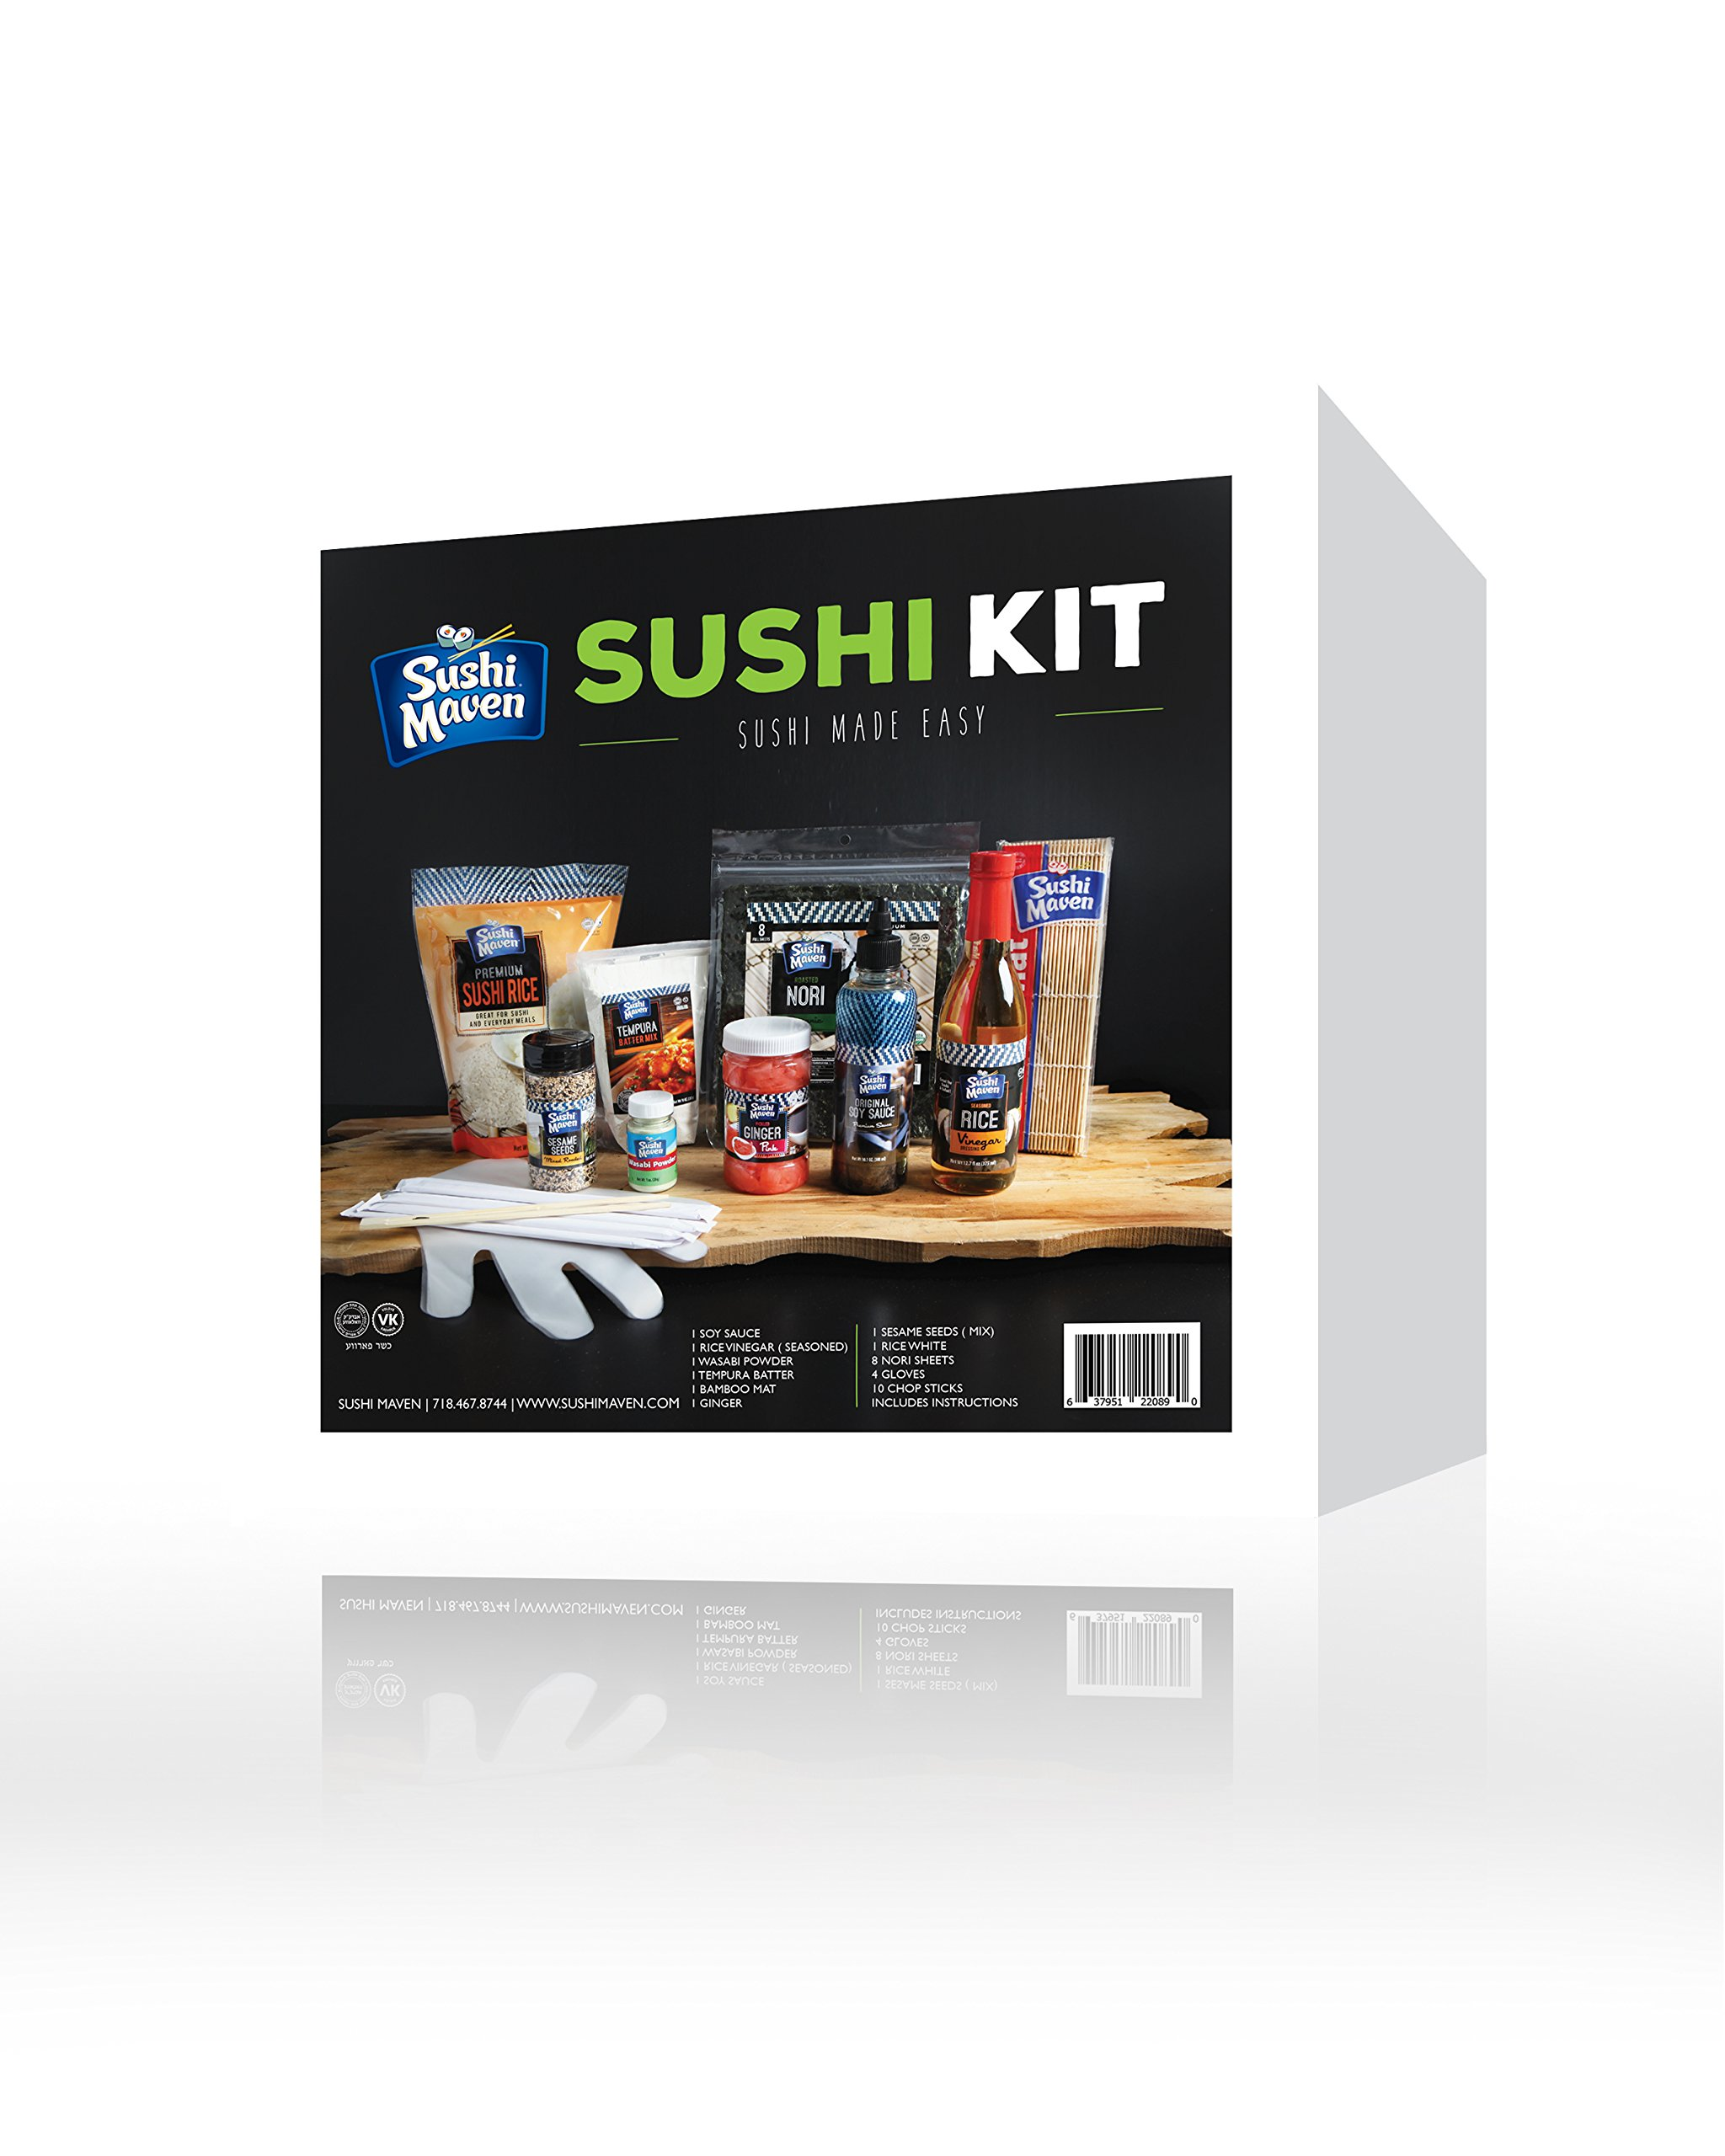 Sushi Kit- DIY Sushi Making Kit- At Home Japanese Roll Maker Set- Learn to Make Sushi Set- With Bamboo Mat Included- For 16 Assorted Rolls- Perfect Gift